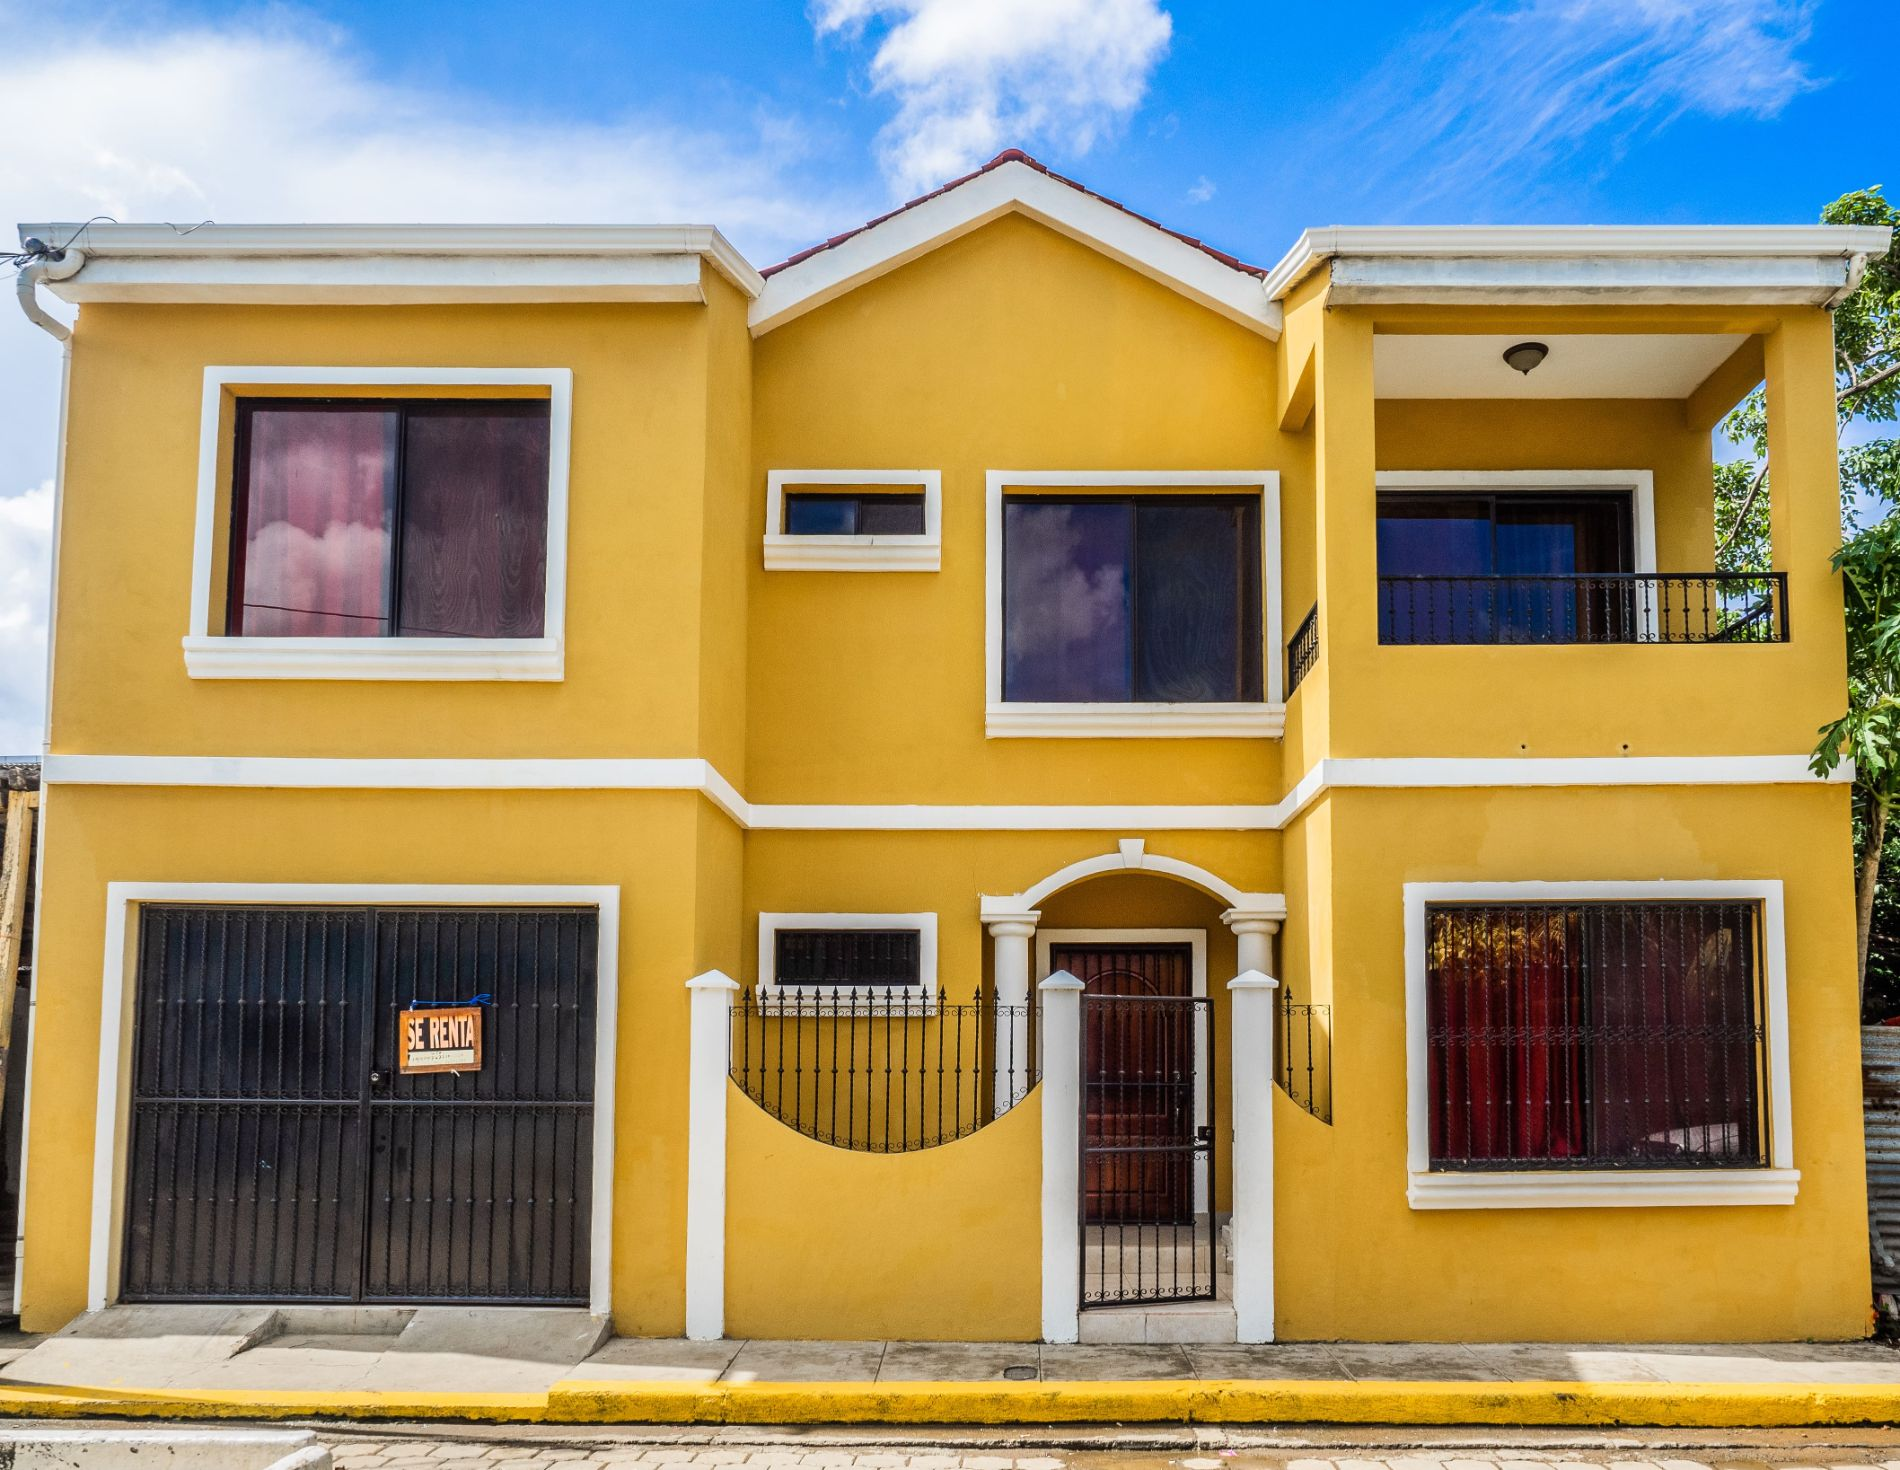 New Three Bedroom Home in the Center of Town